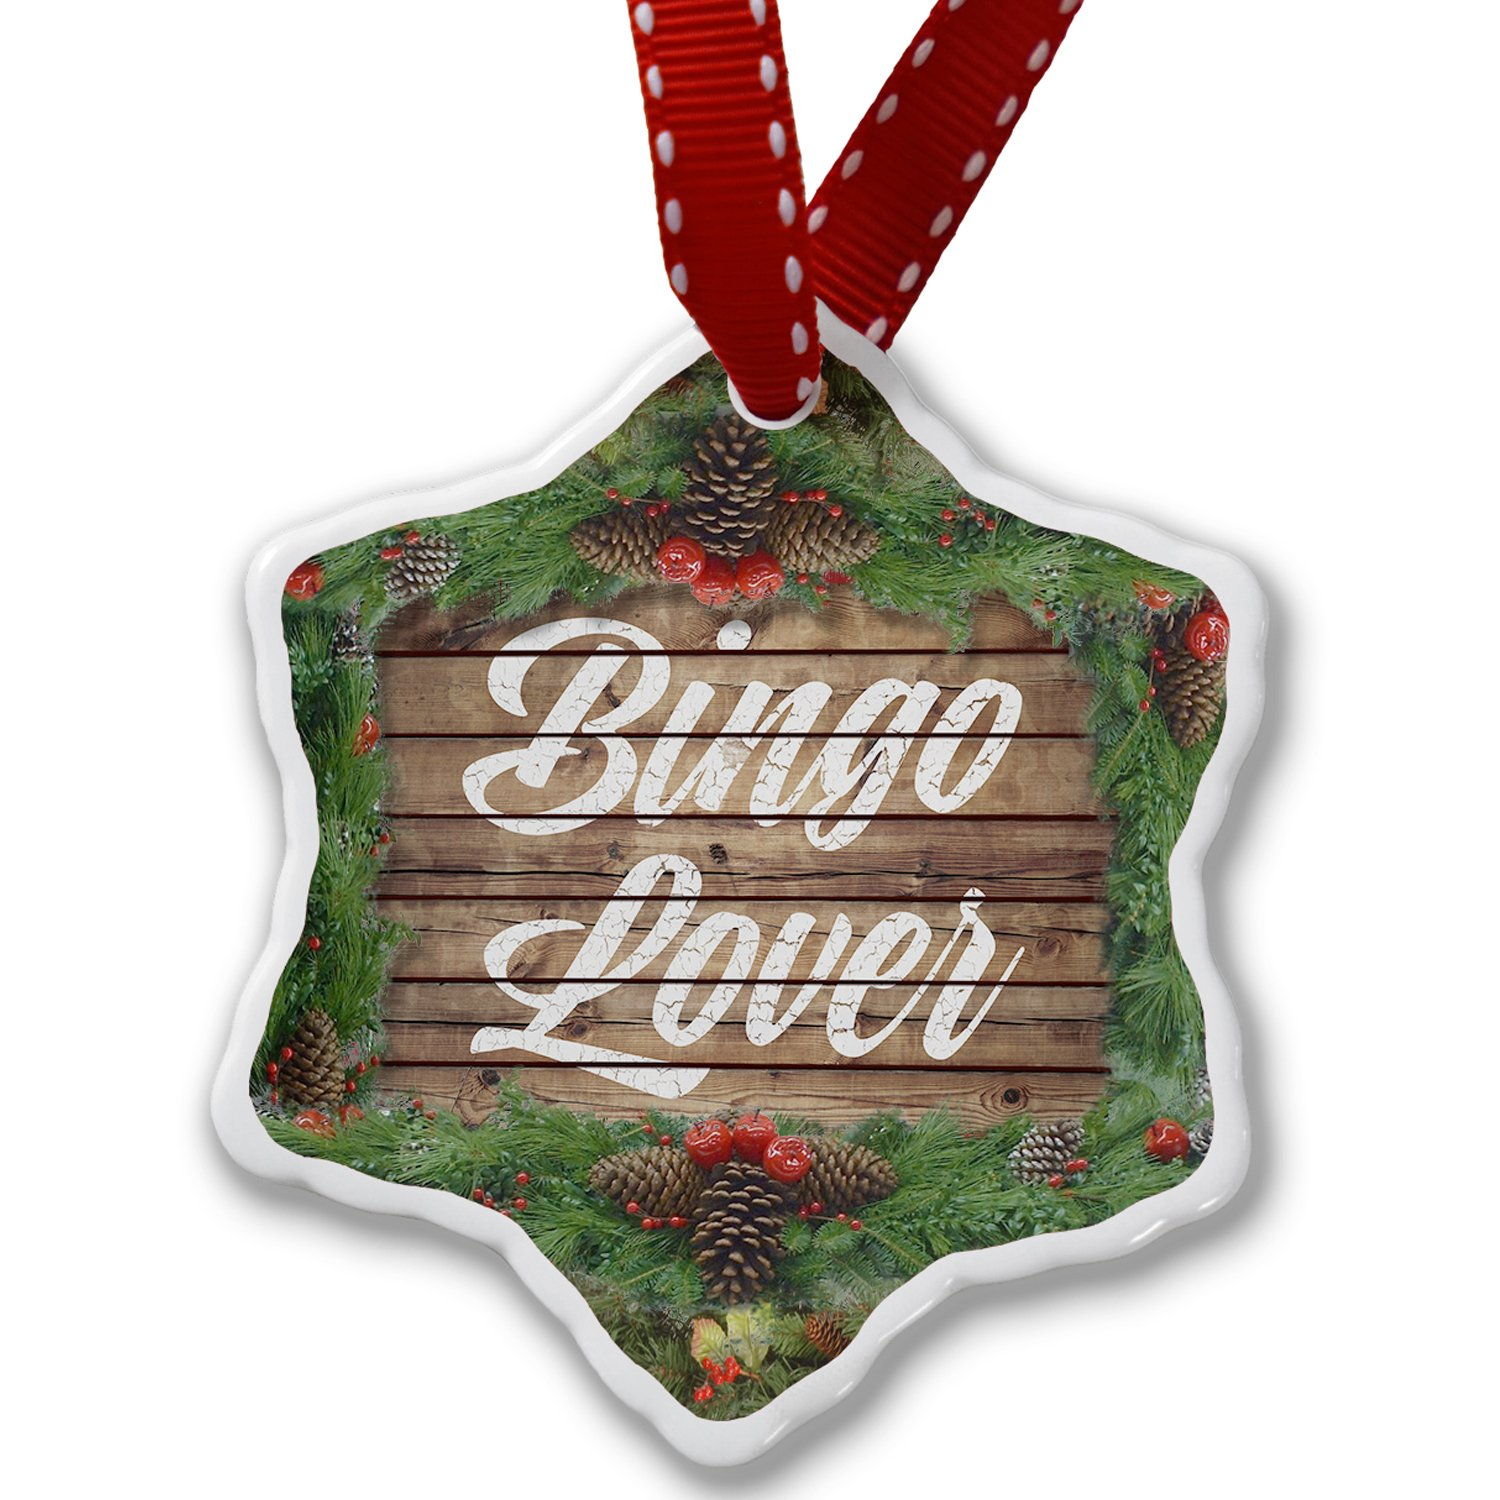 Christmas Ornament Painted Wood Bingo Lover - Neonblond